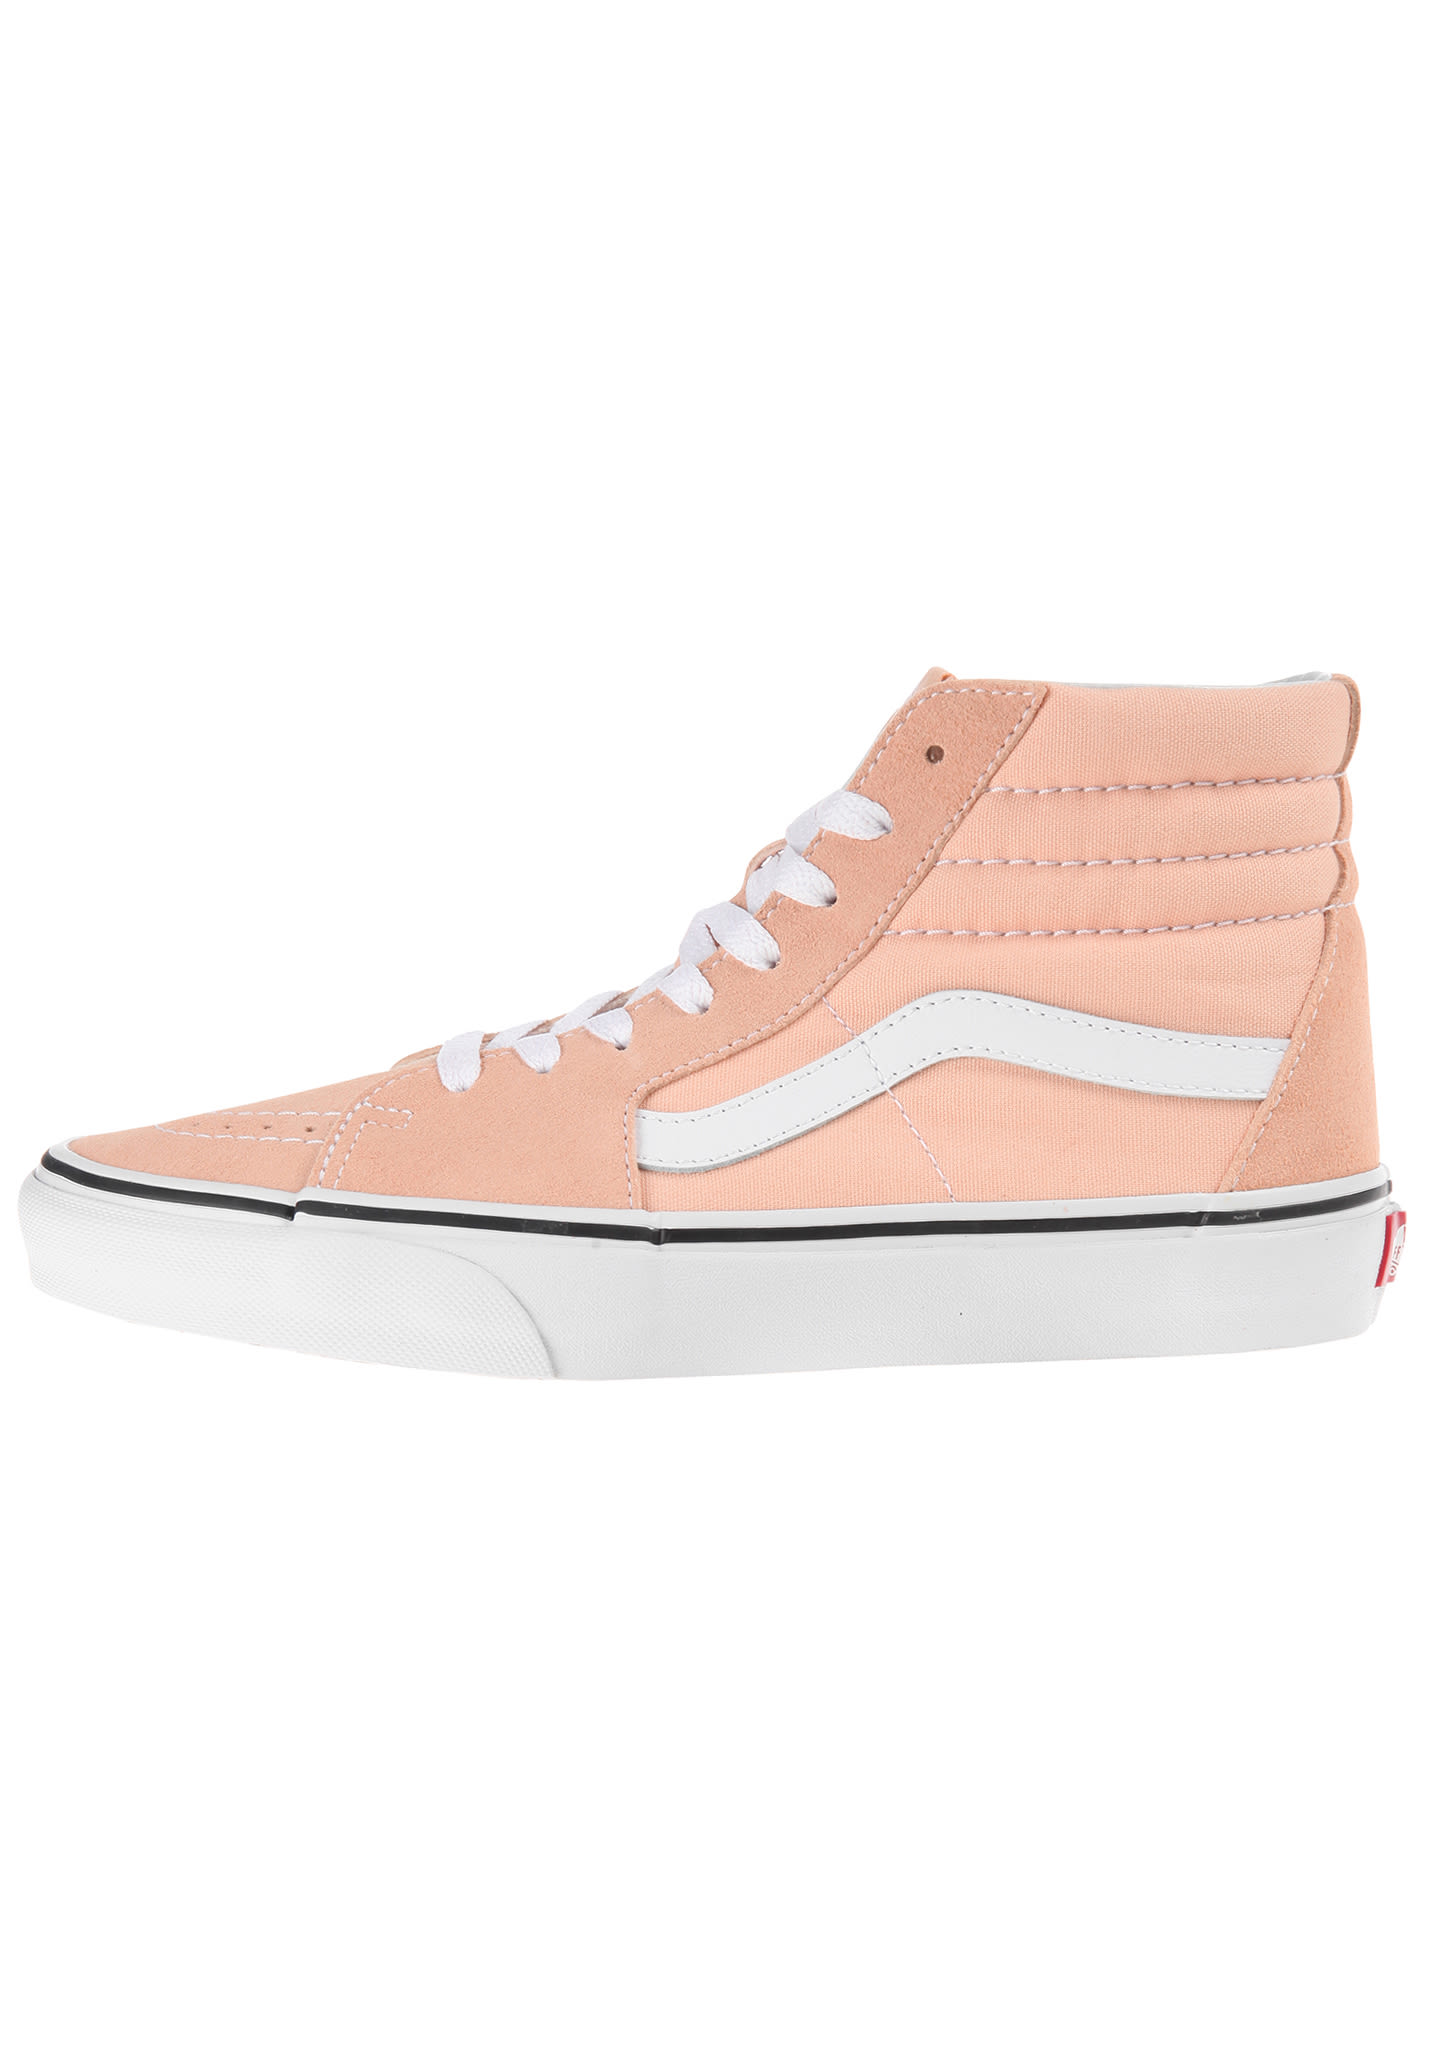 31359654b4 Vans Sk8-Hi - Sneakers - Orange - Planet Sports